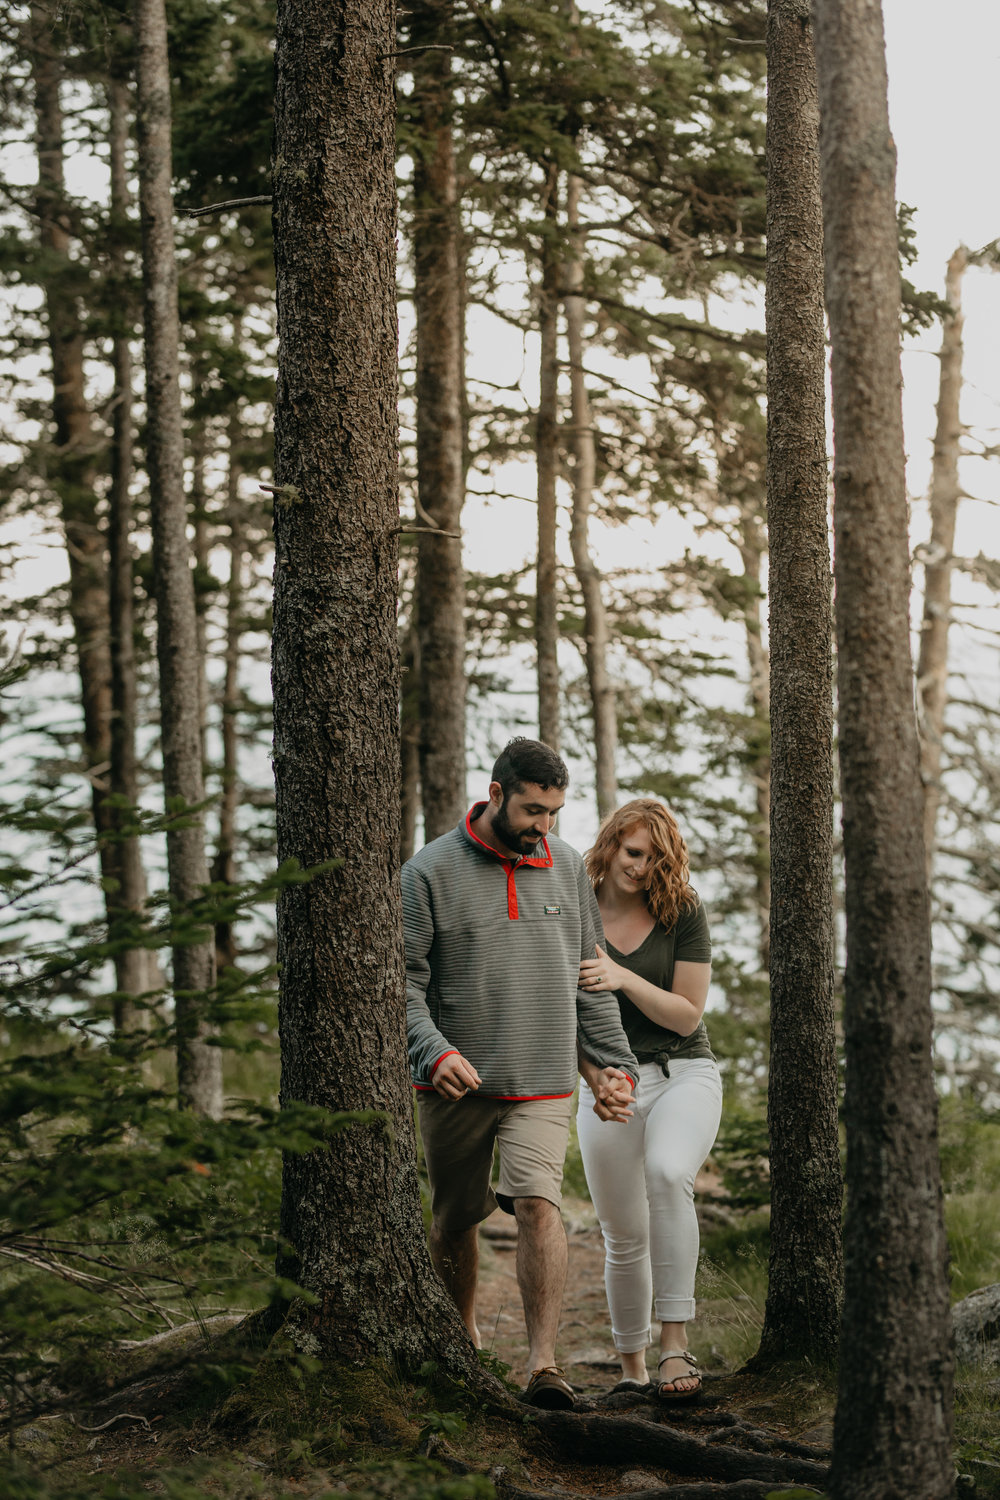 nicole-daacke-photography-acadia-national-park-engagement-photos-session-little-hunters-beach-sunset-cadillac-mountain-thunder-hole-otter-cliffs-couples-session-acadia-elopement-photographer-pine-trees-ocean-maine-47.jpg